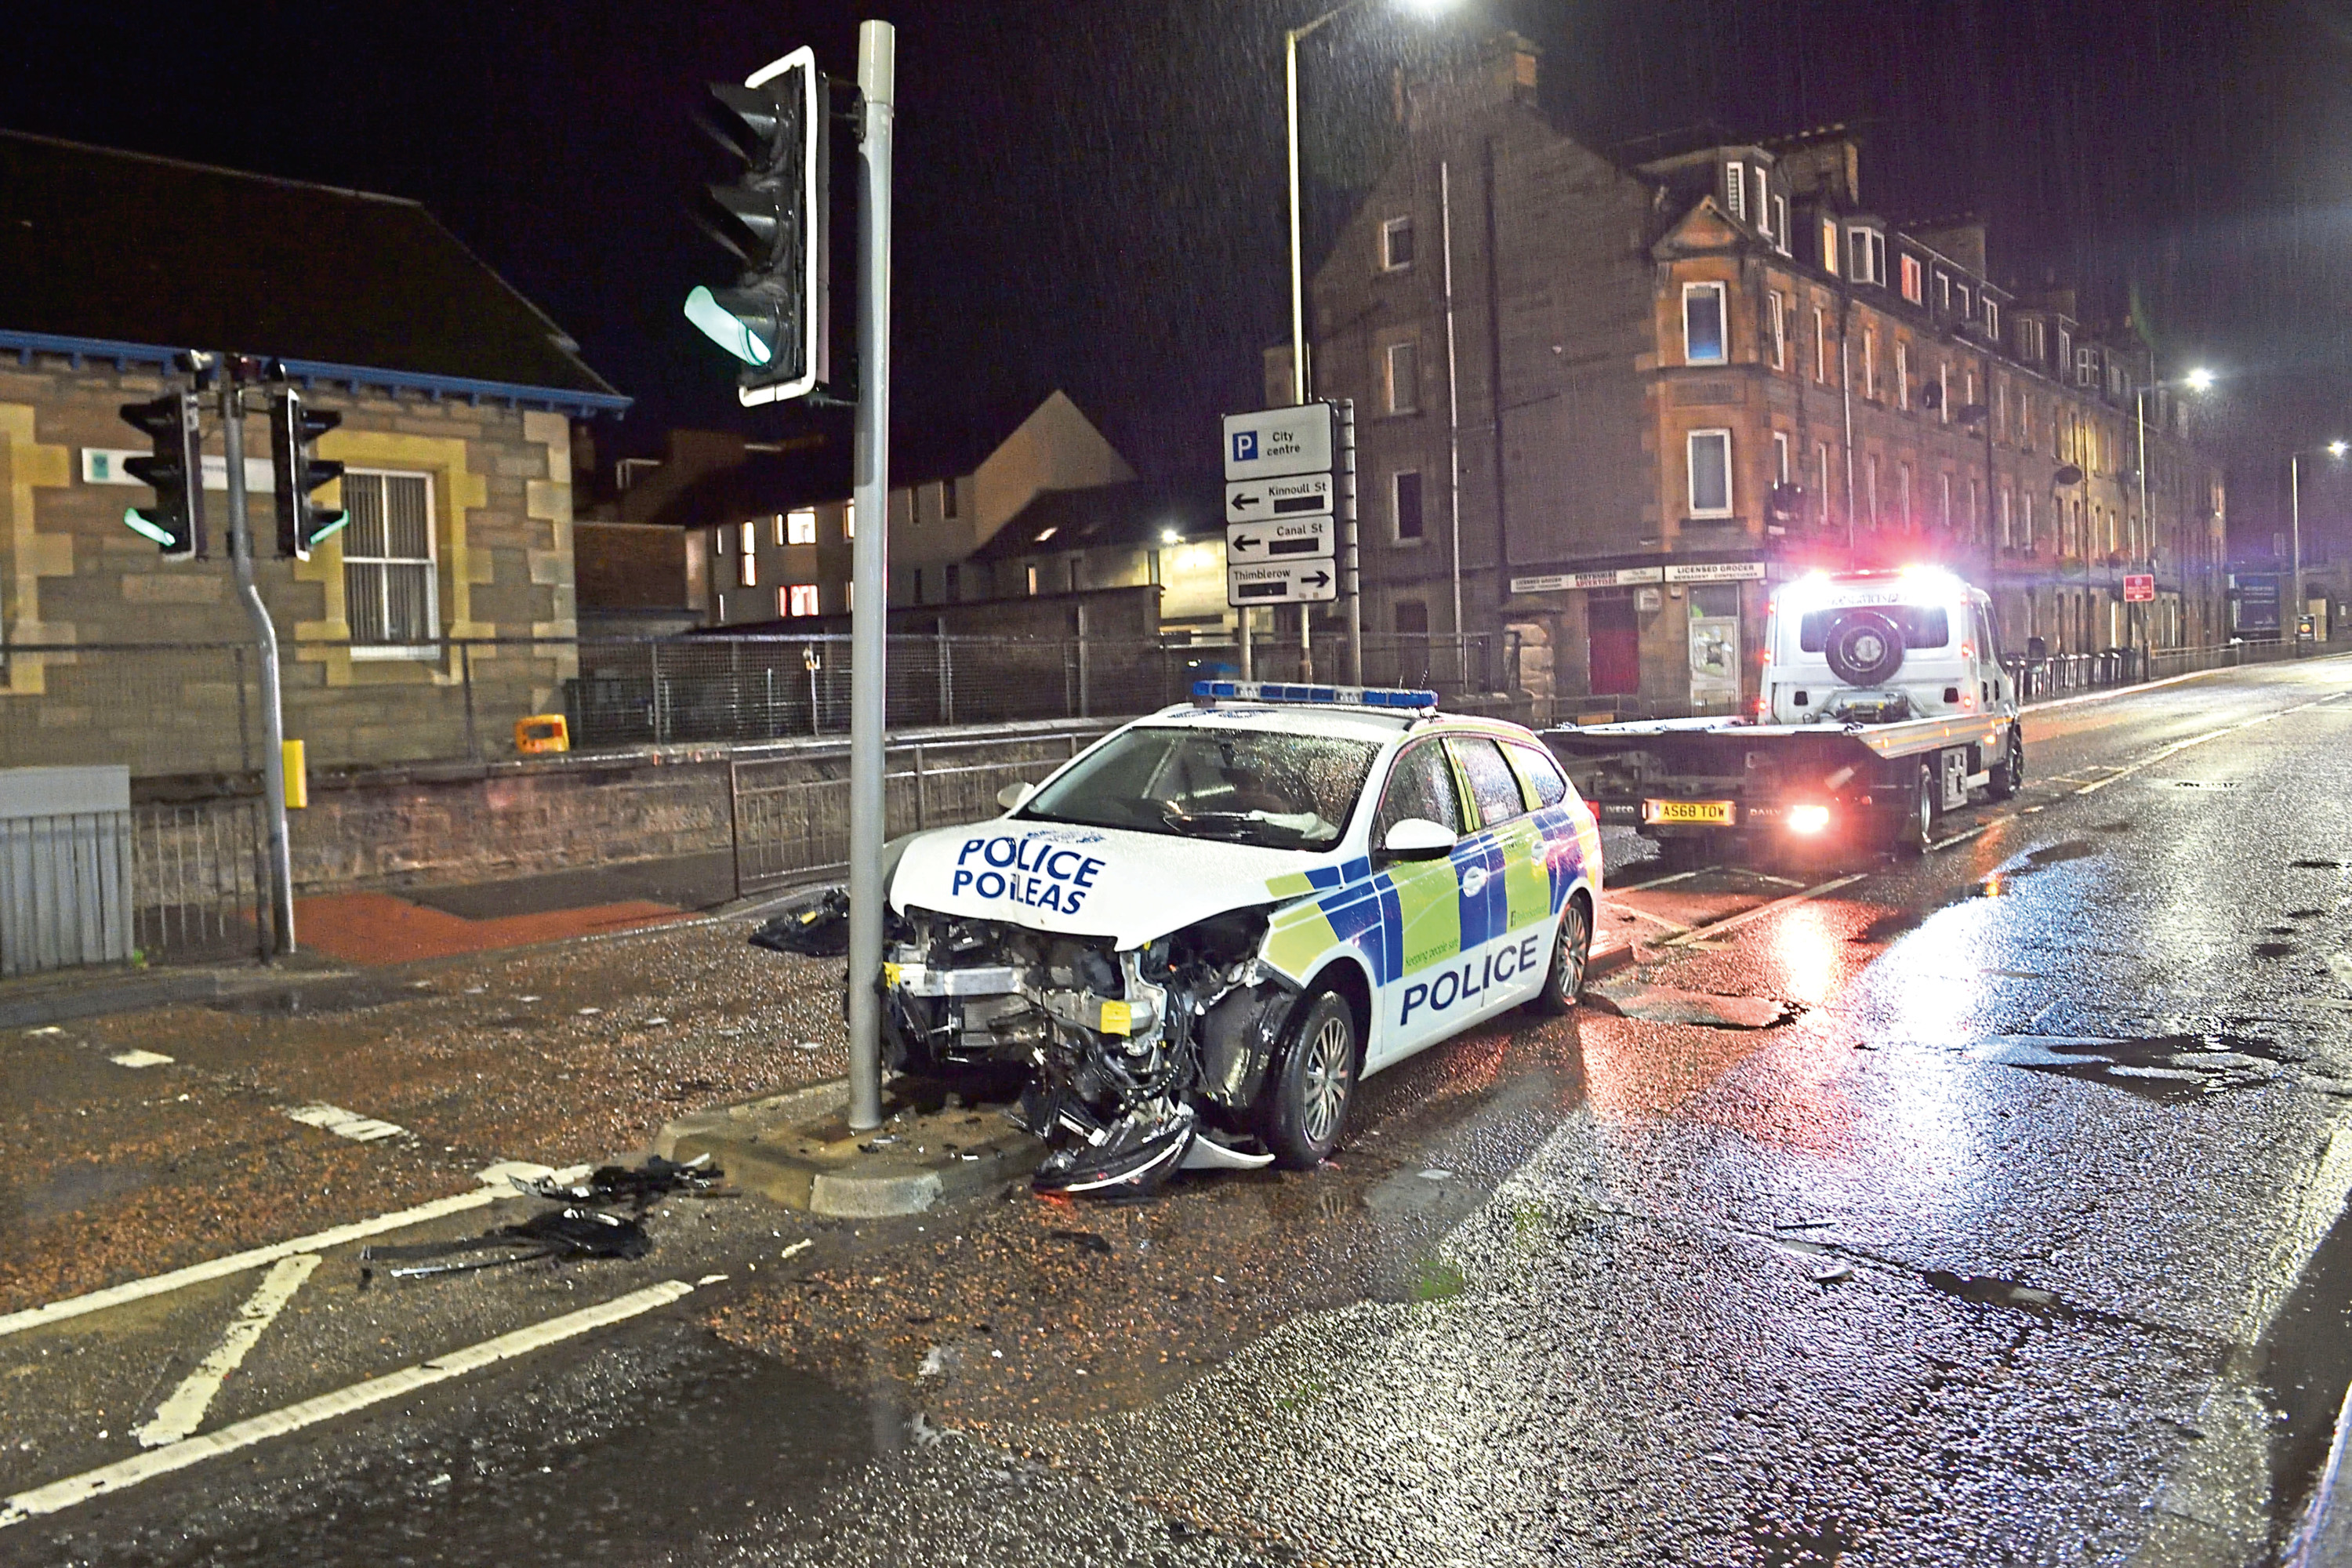 The police car was badly damaged in the crash on Barrack Street, Perth